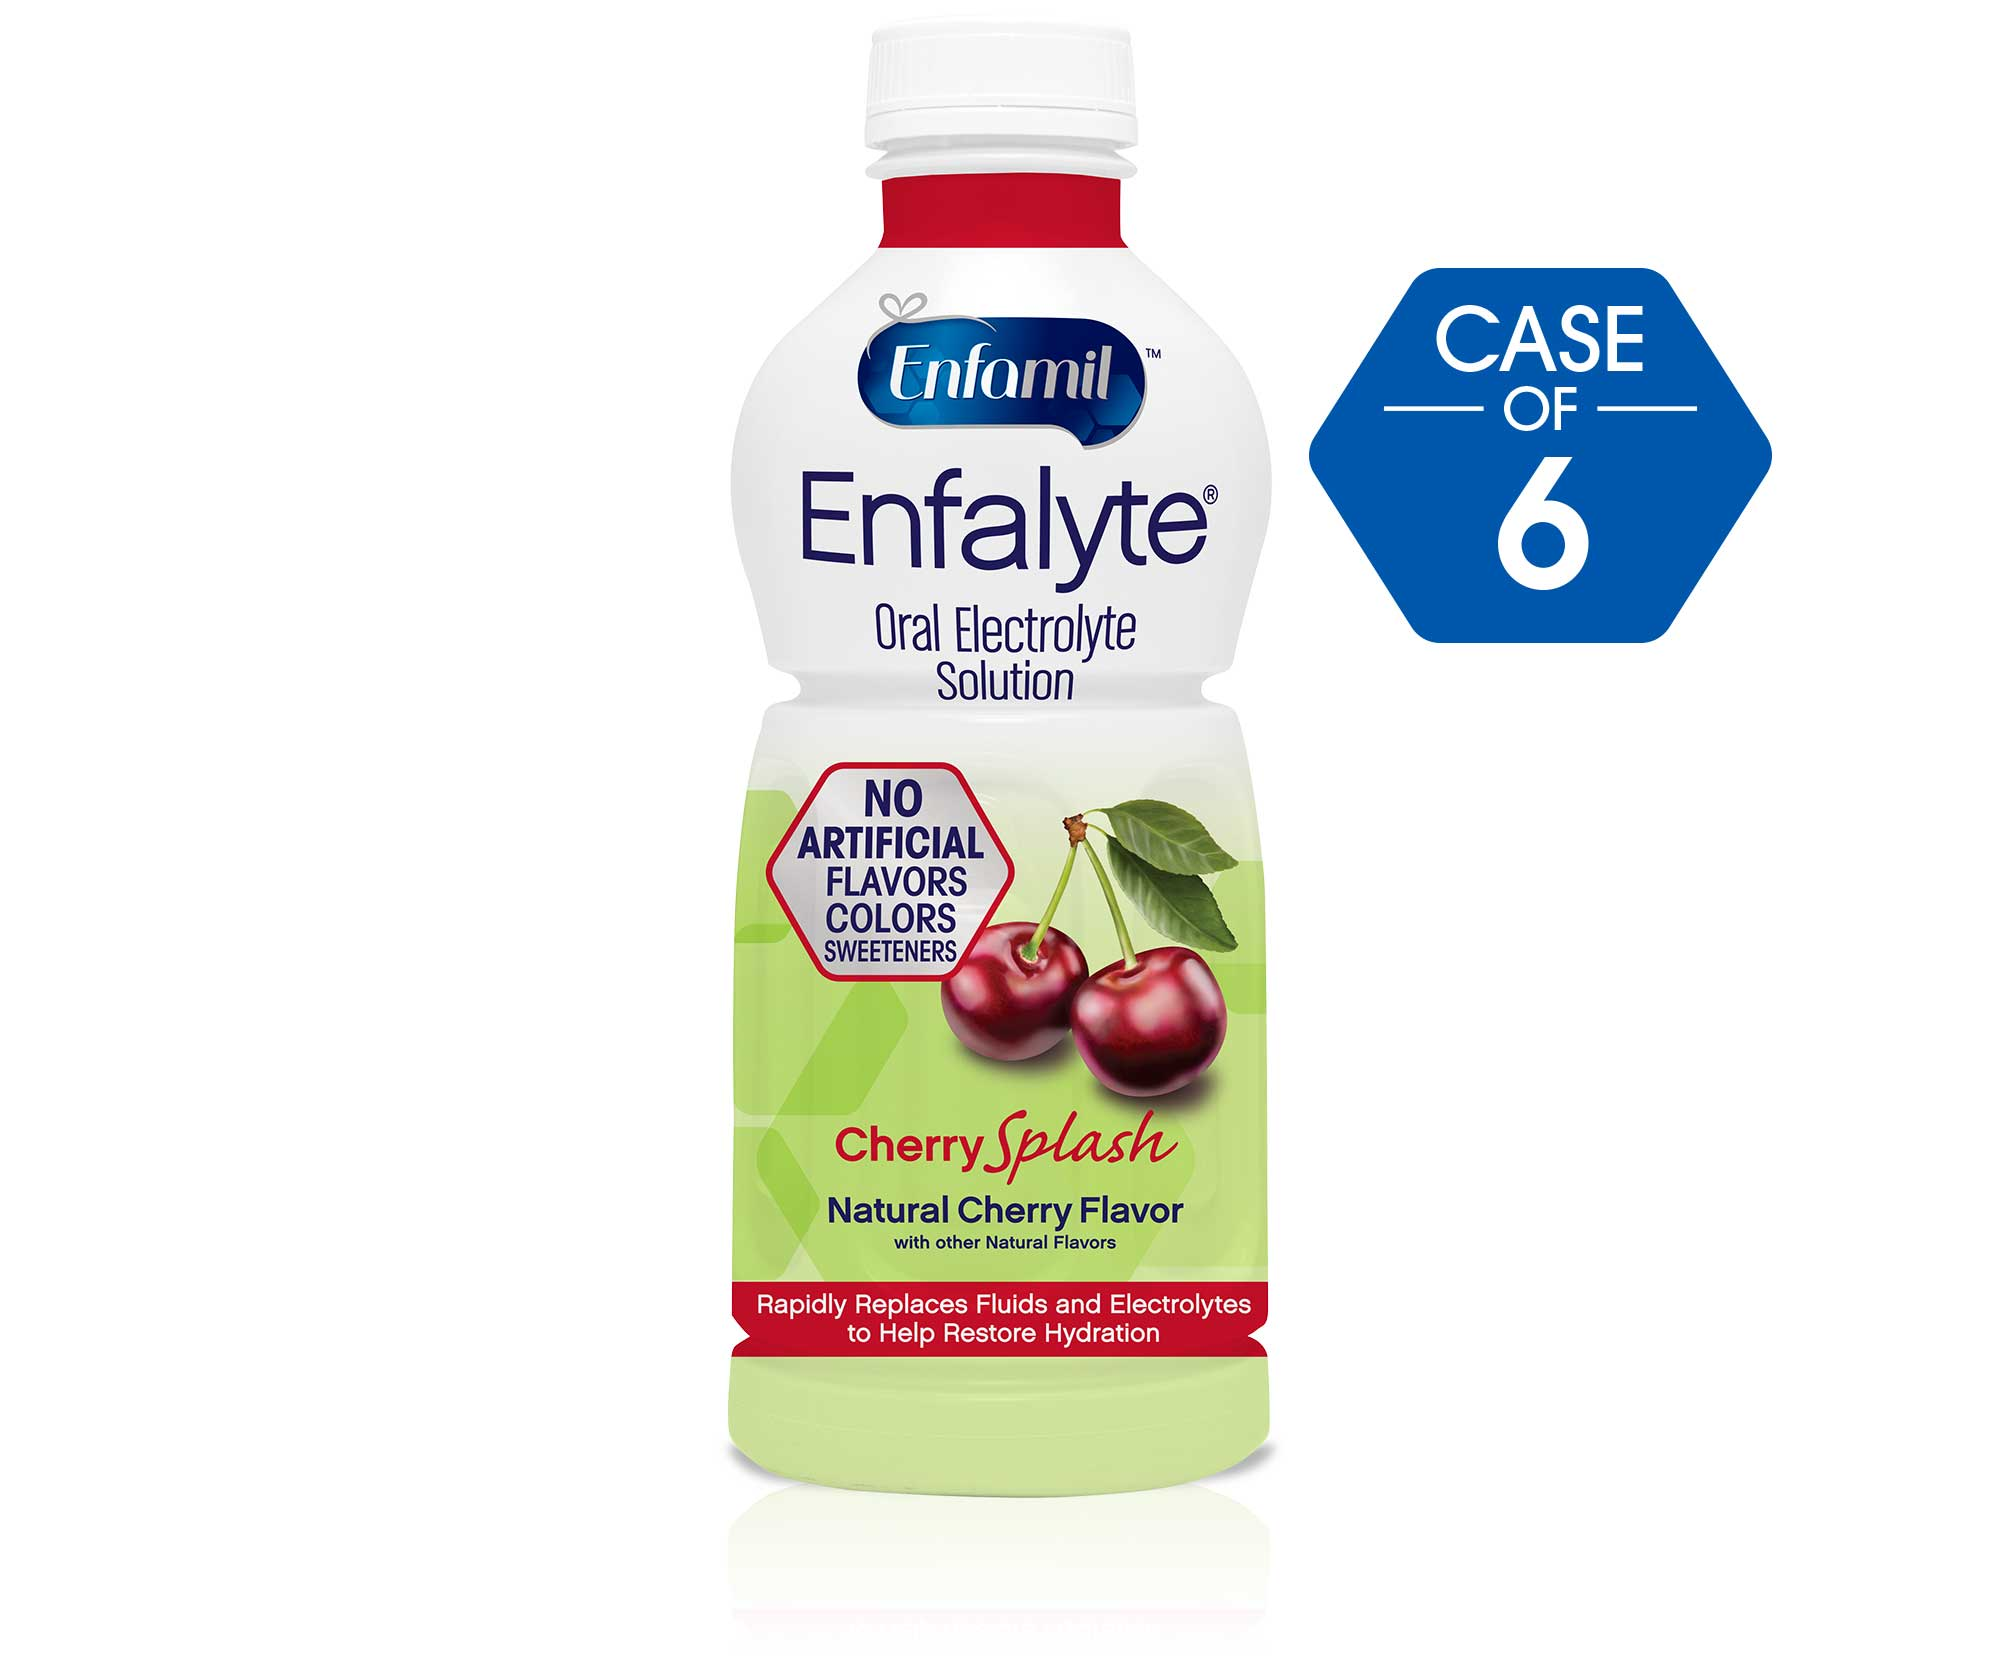 Enfamil Enfalyte Oral Electrolyte Solution, for Oral Rehydration ...